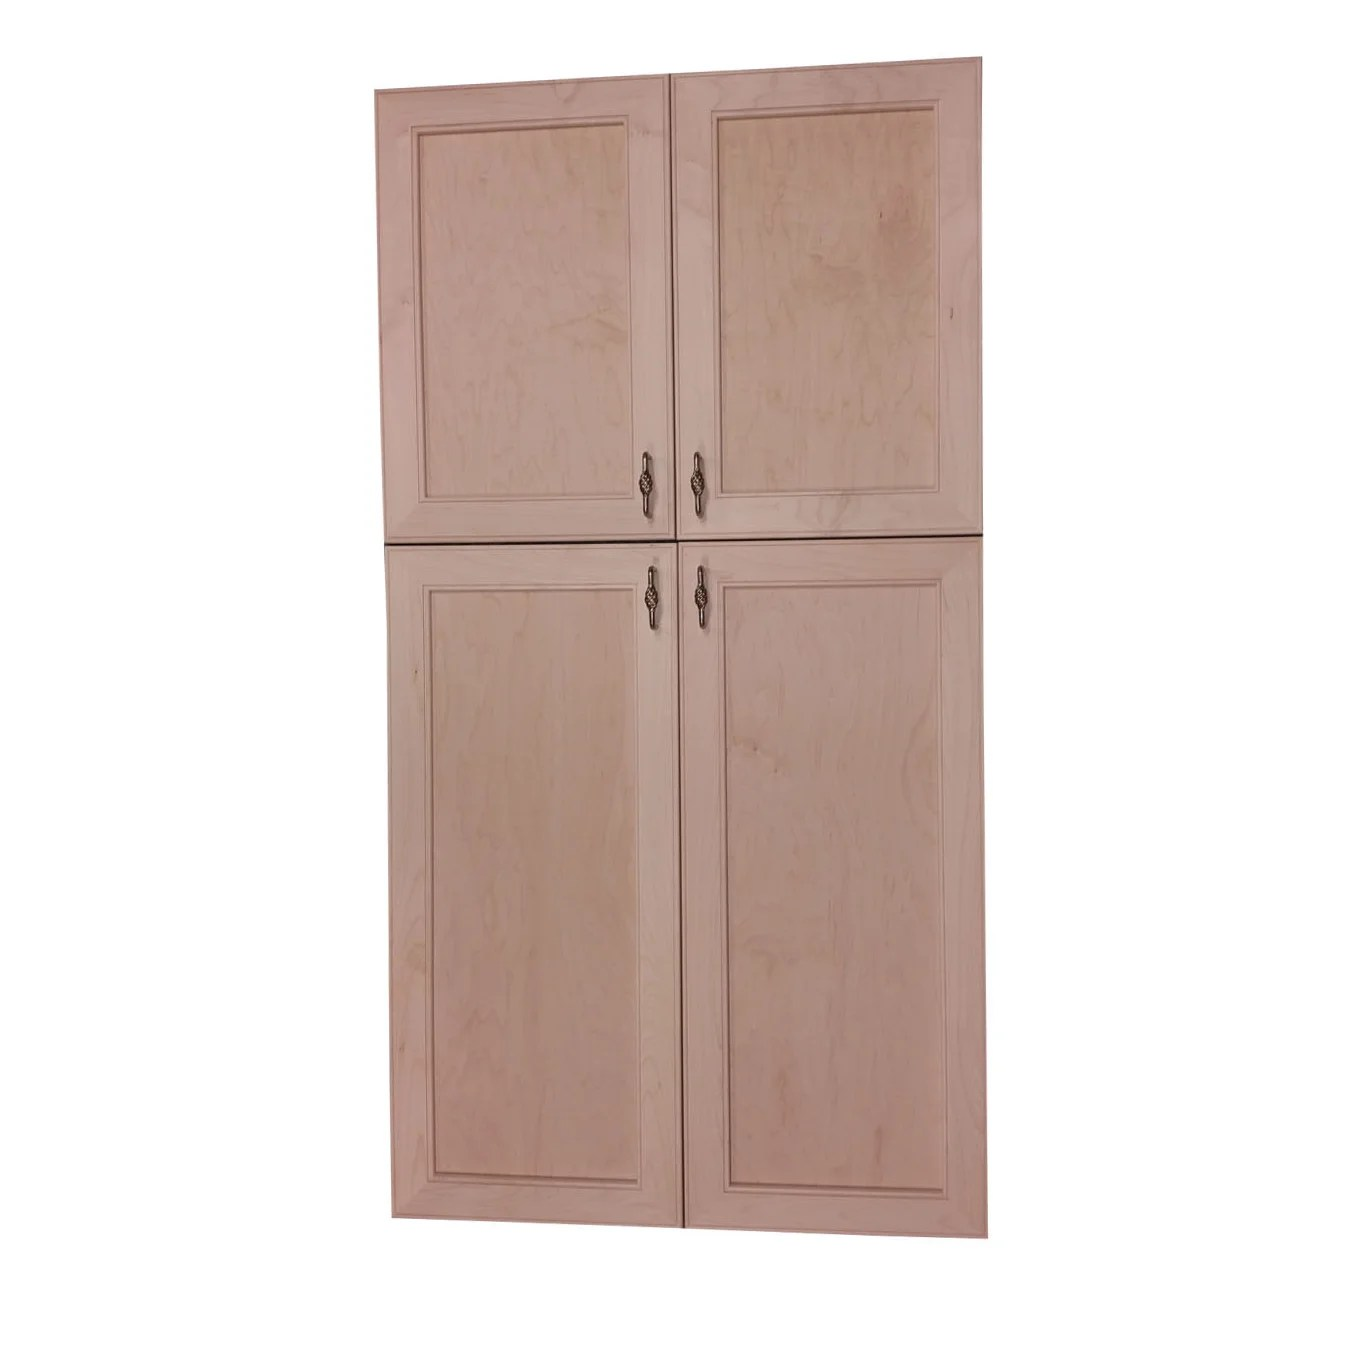 Buy Pantry Wg Wood Products Village Kitchen Pantry Wayfair